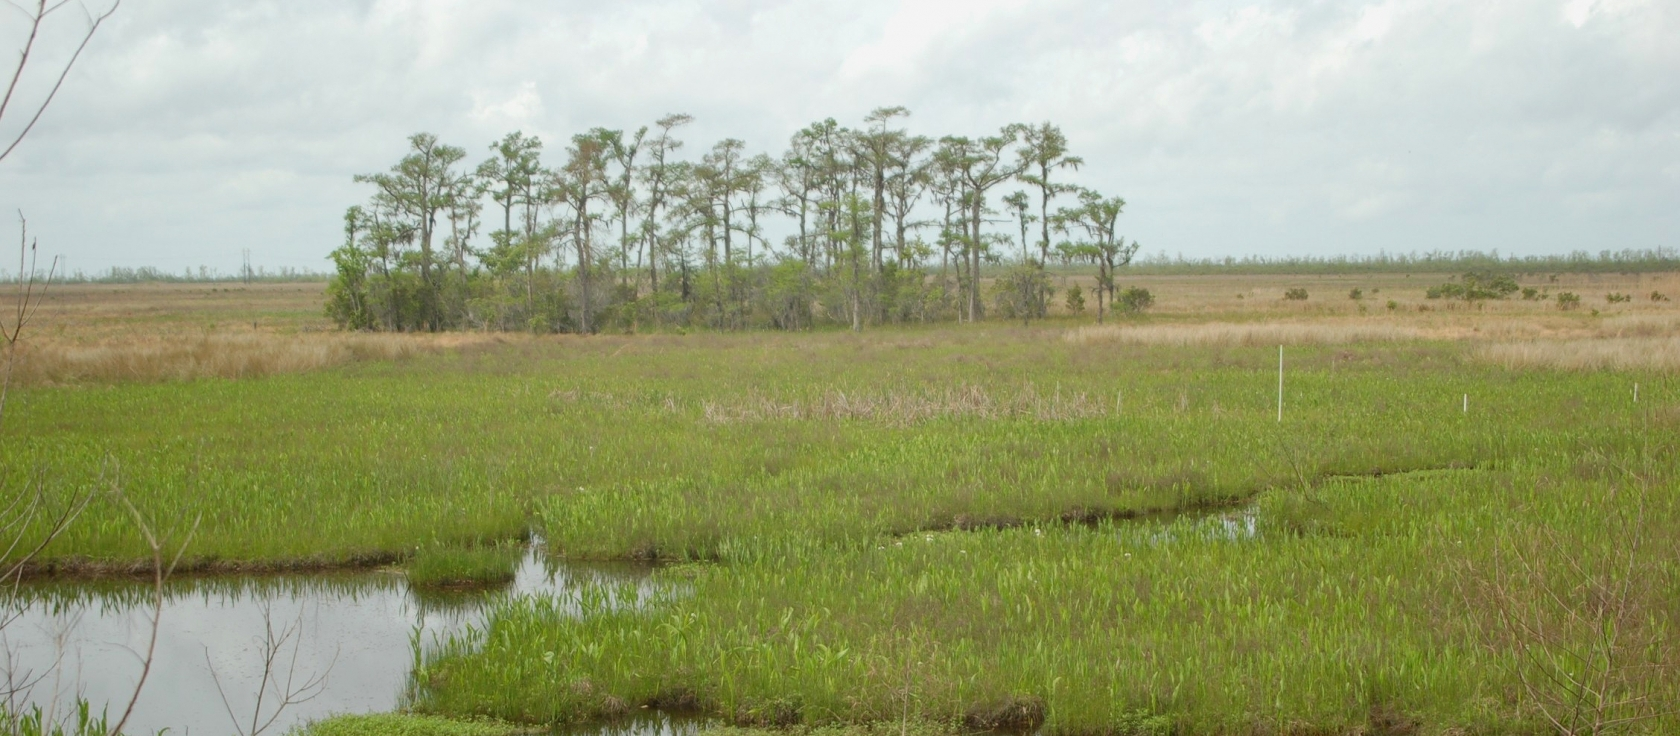 Marshes in the Barataria Preserve at Jean Lafitte National Historical Park and Preserve